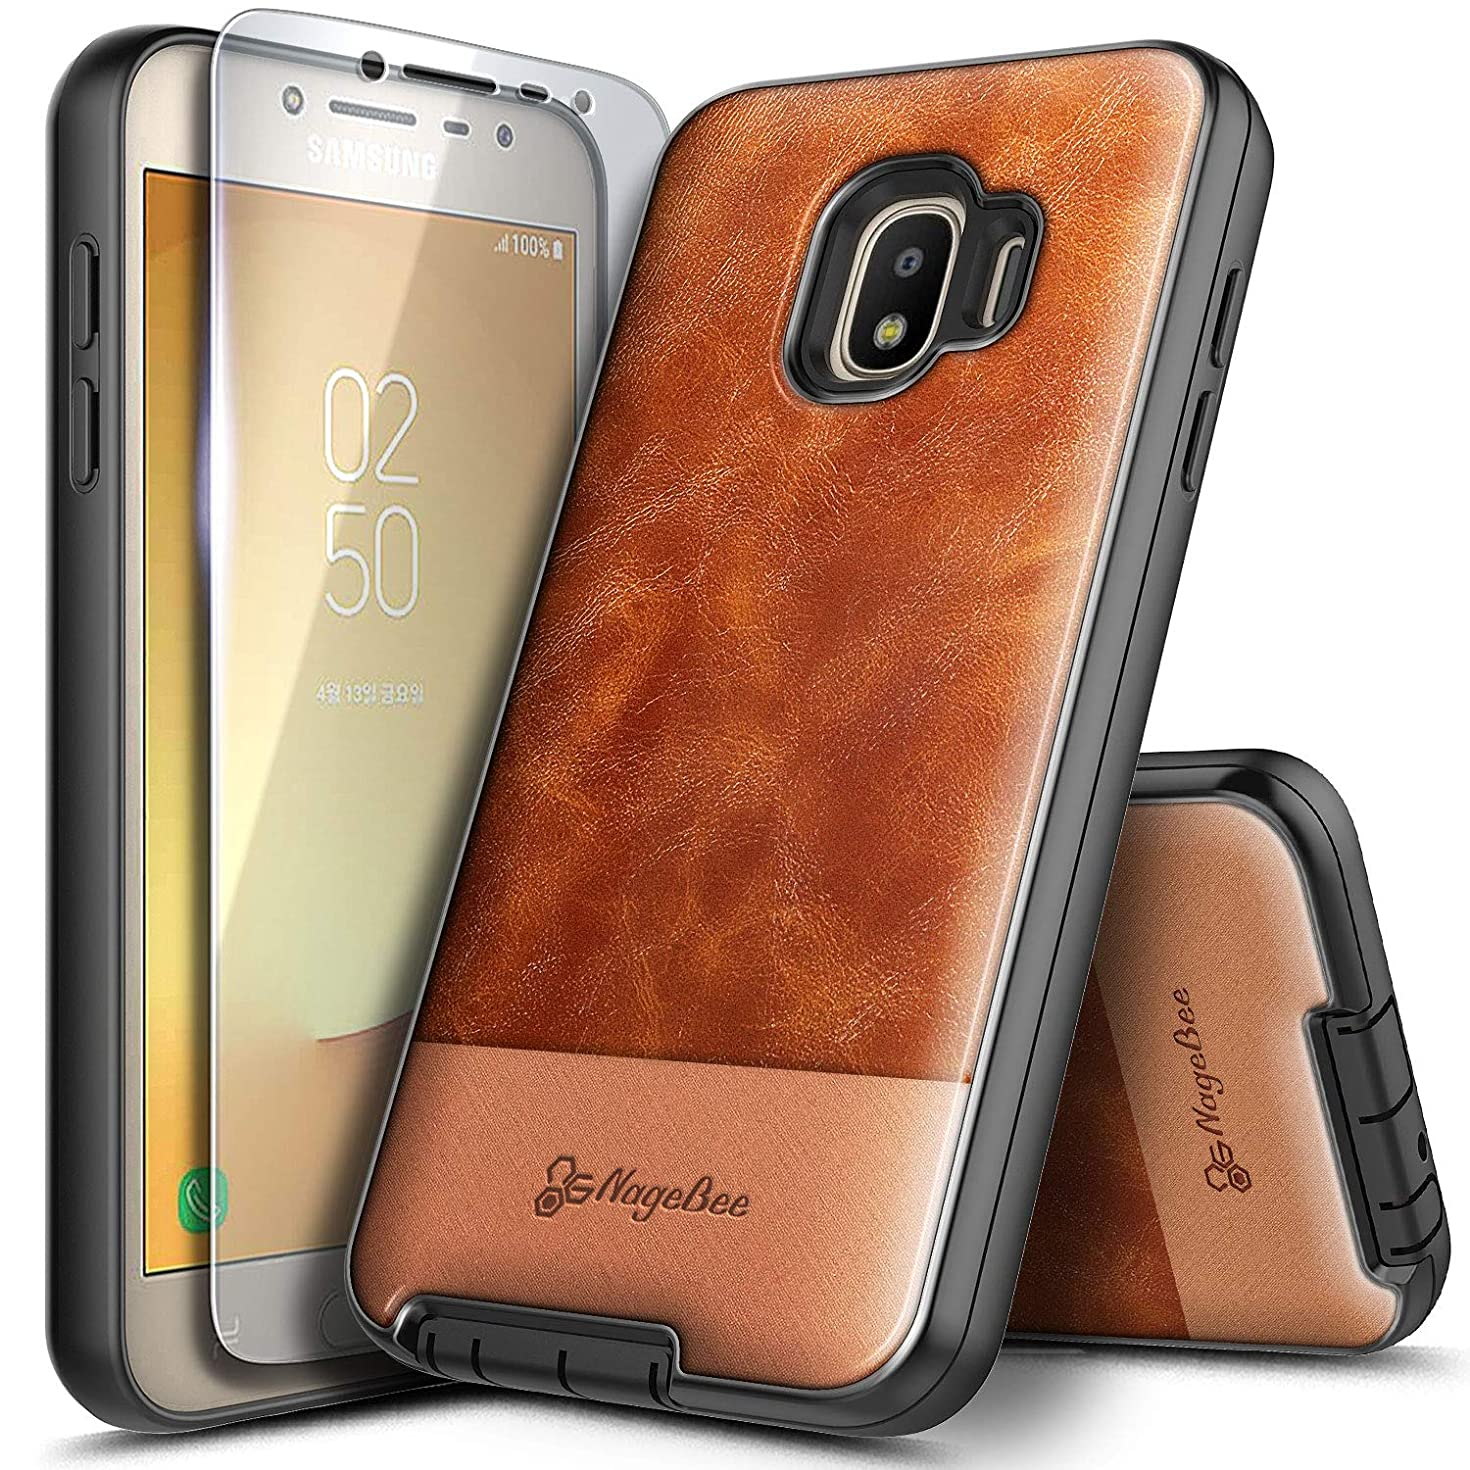 Galaxy J2 Case, J2 Core /J2 Dash /J2 Pure Case with Tempered Glass Screen Protector, NageBee Premium Cowhide Leather Shockproof Hybrid Defender Rugged Durable Case for Samsung Galaxy J2 2019 -Brown